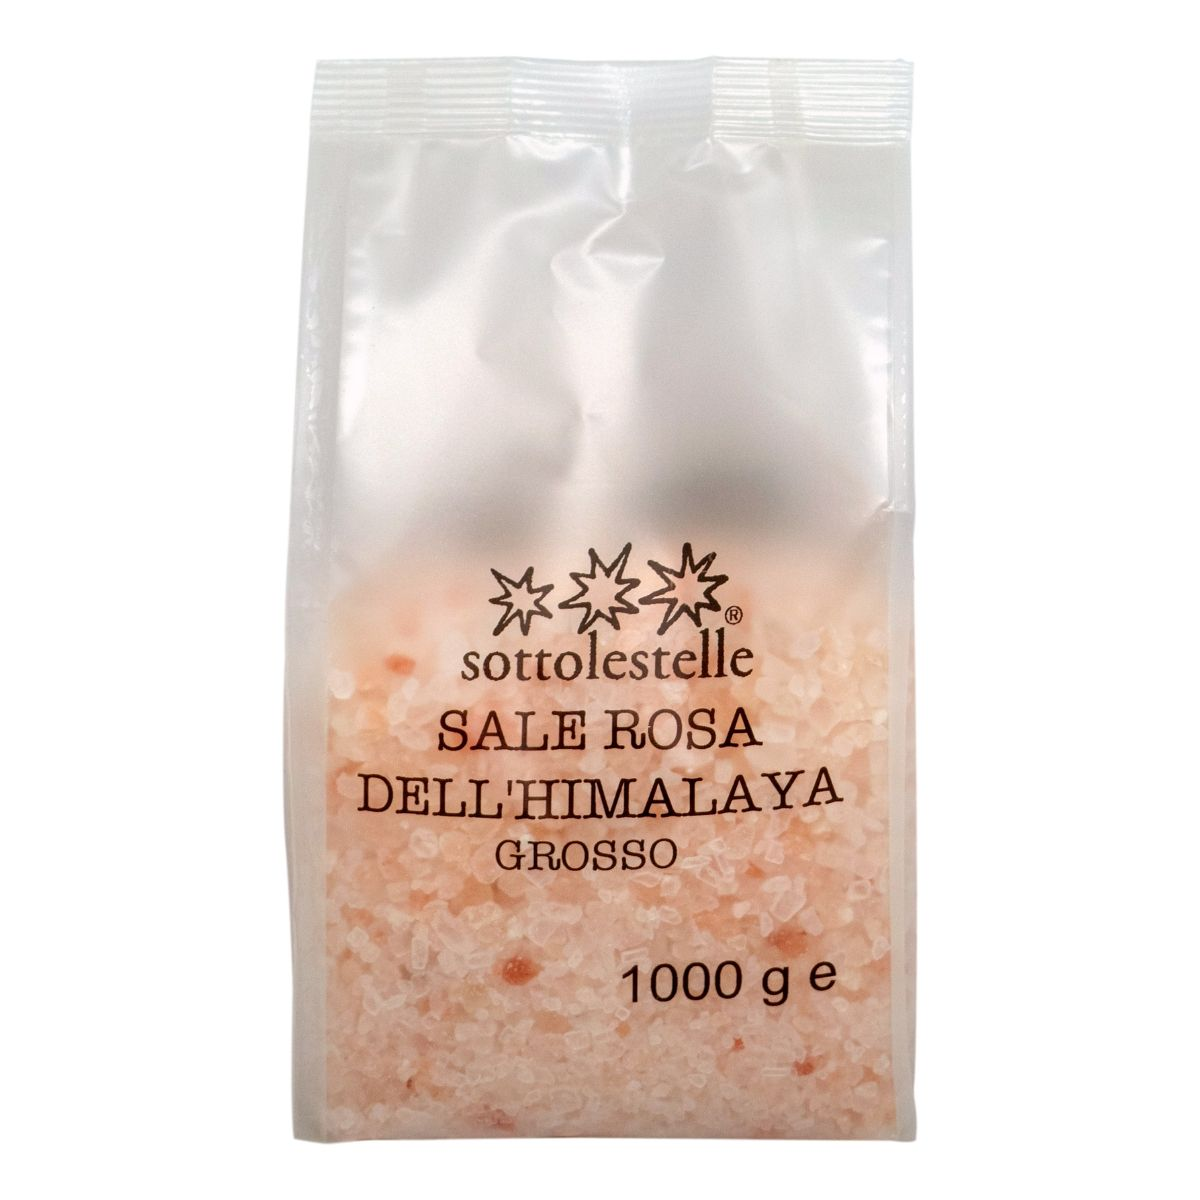 8032454071512 A Hạt Muối hồng Himalaya Sottolestelle 1000g - Sale Rosa Himalayano Grosso